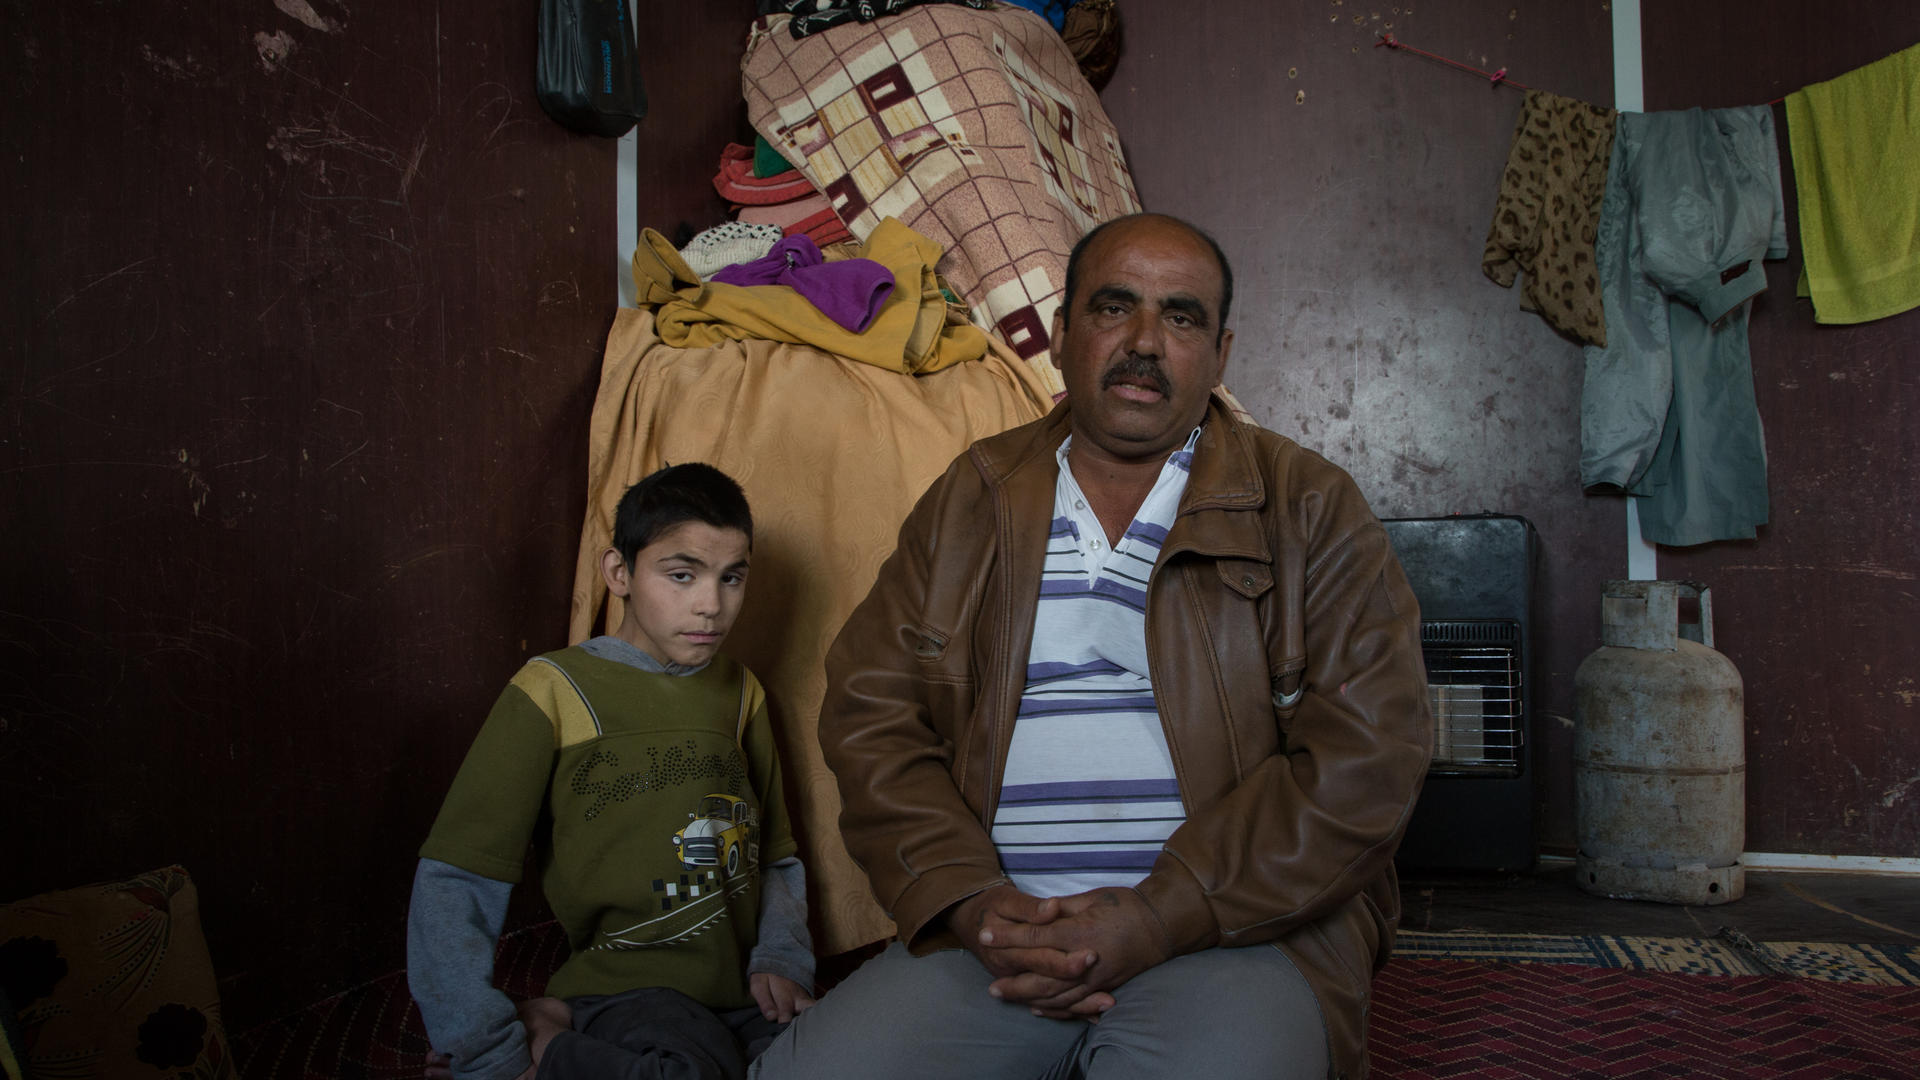 Abu Raed sits with his son Bashar, who is paralyzed, in their family's caravan at the Zaatari refugee camp in Jordan.